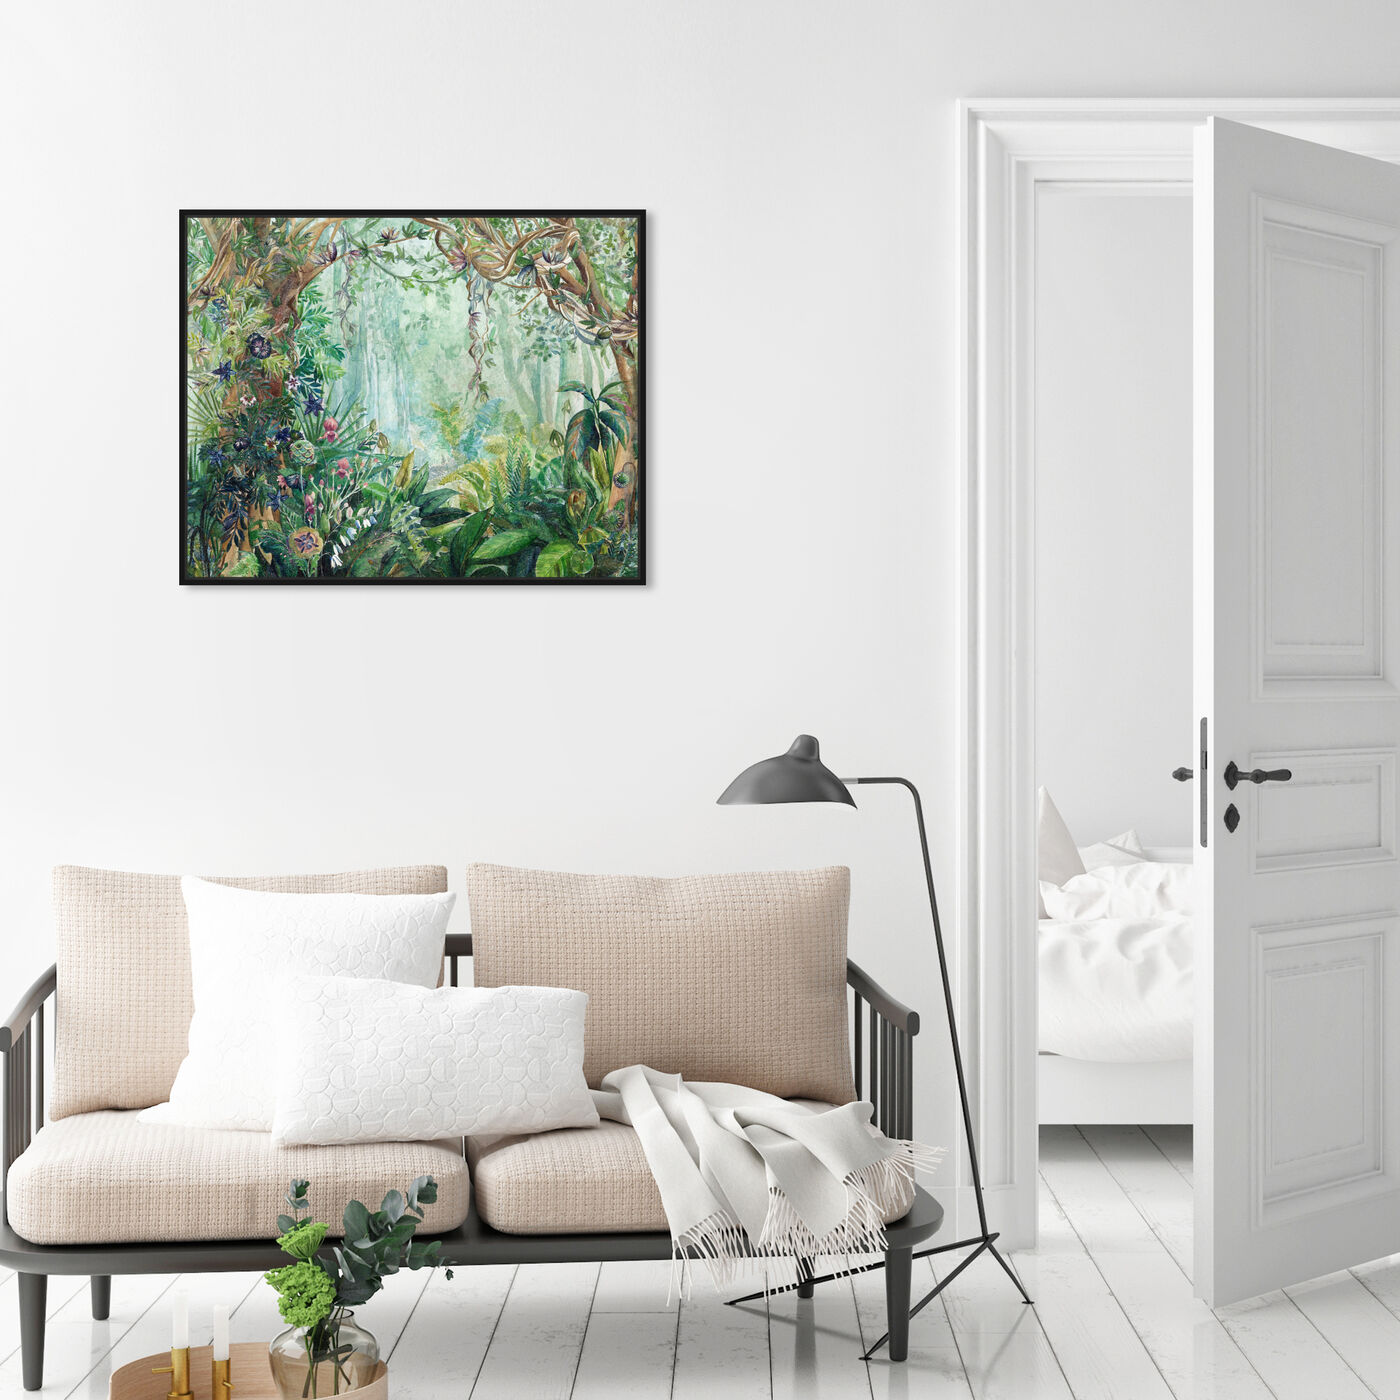 Hanging view of Dreamy place featuring floral and botanical and gardens art.